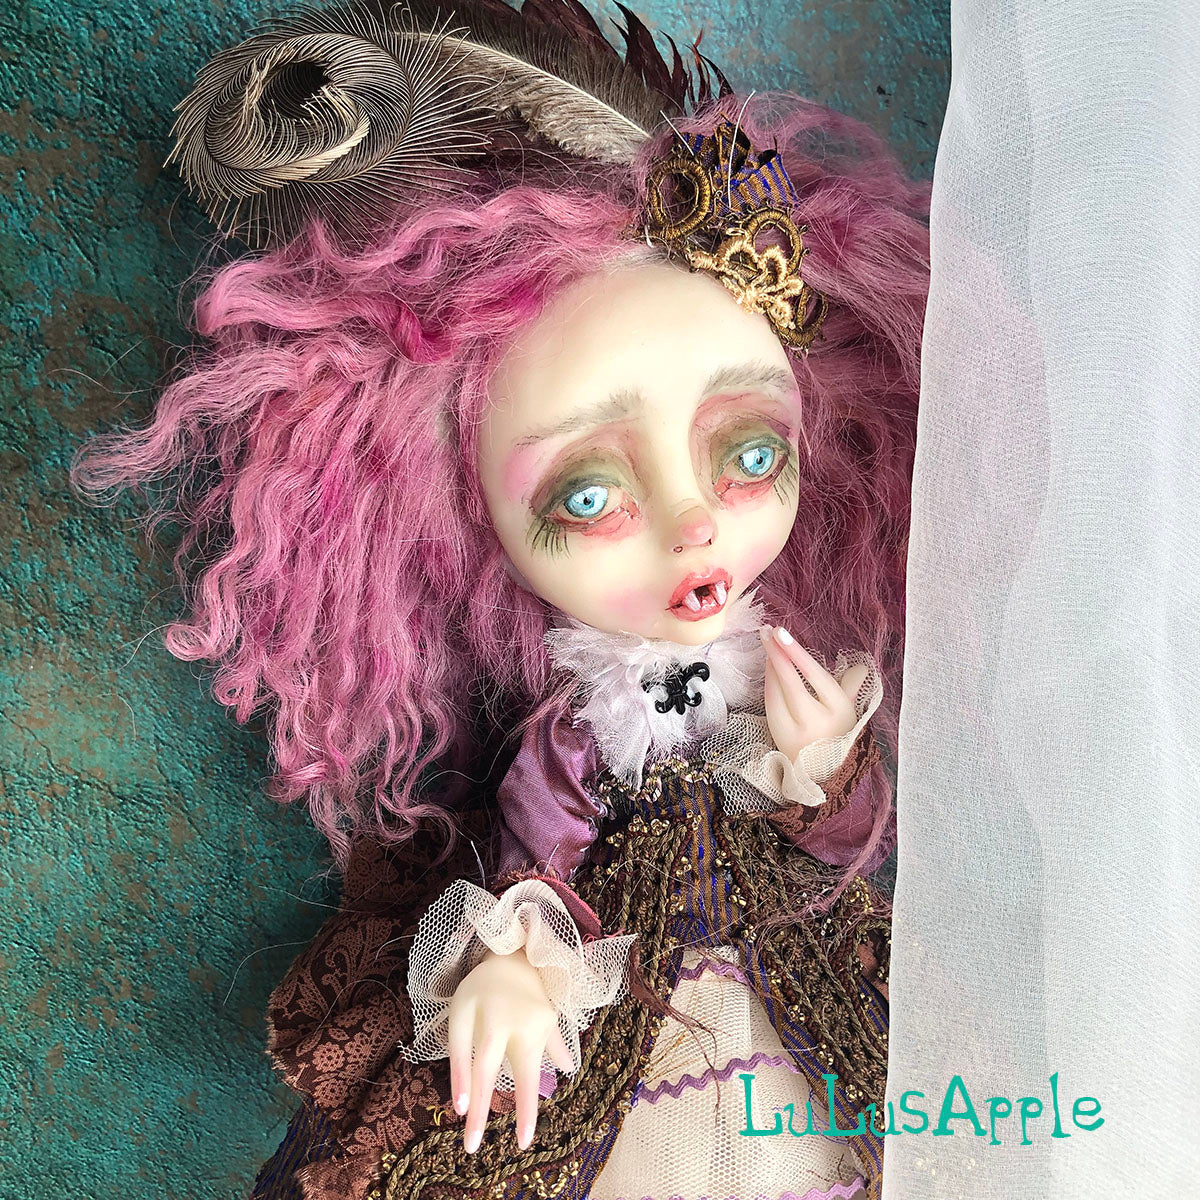 Adeline the Rococo Vampire Winter OOAK Art Doll LuLusApple